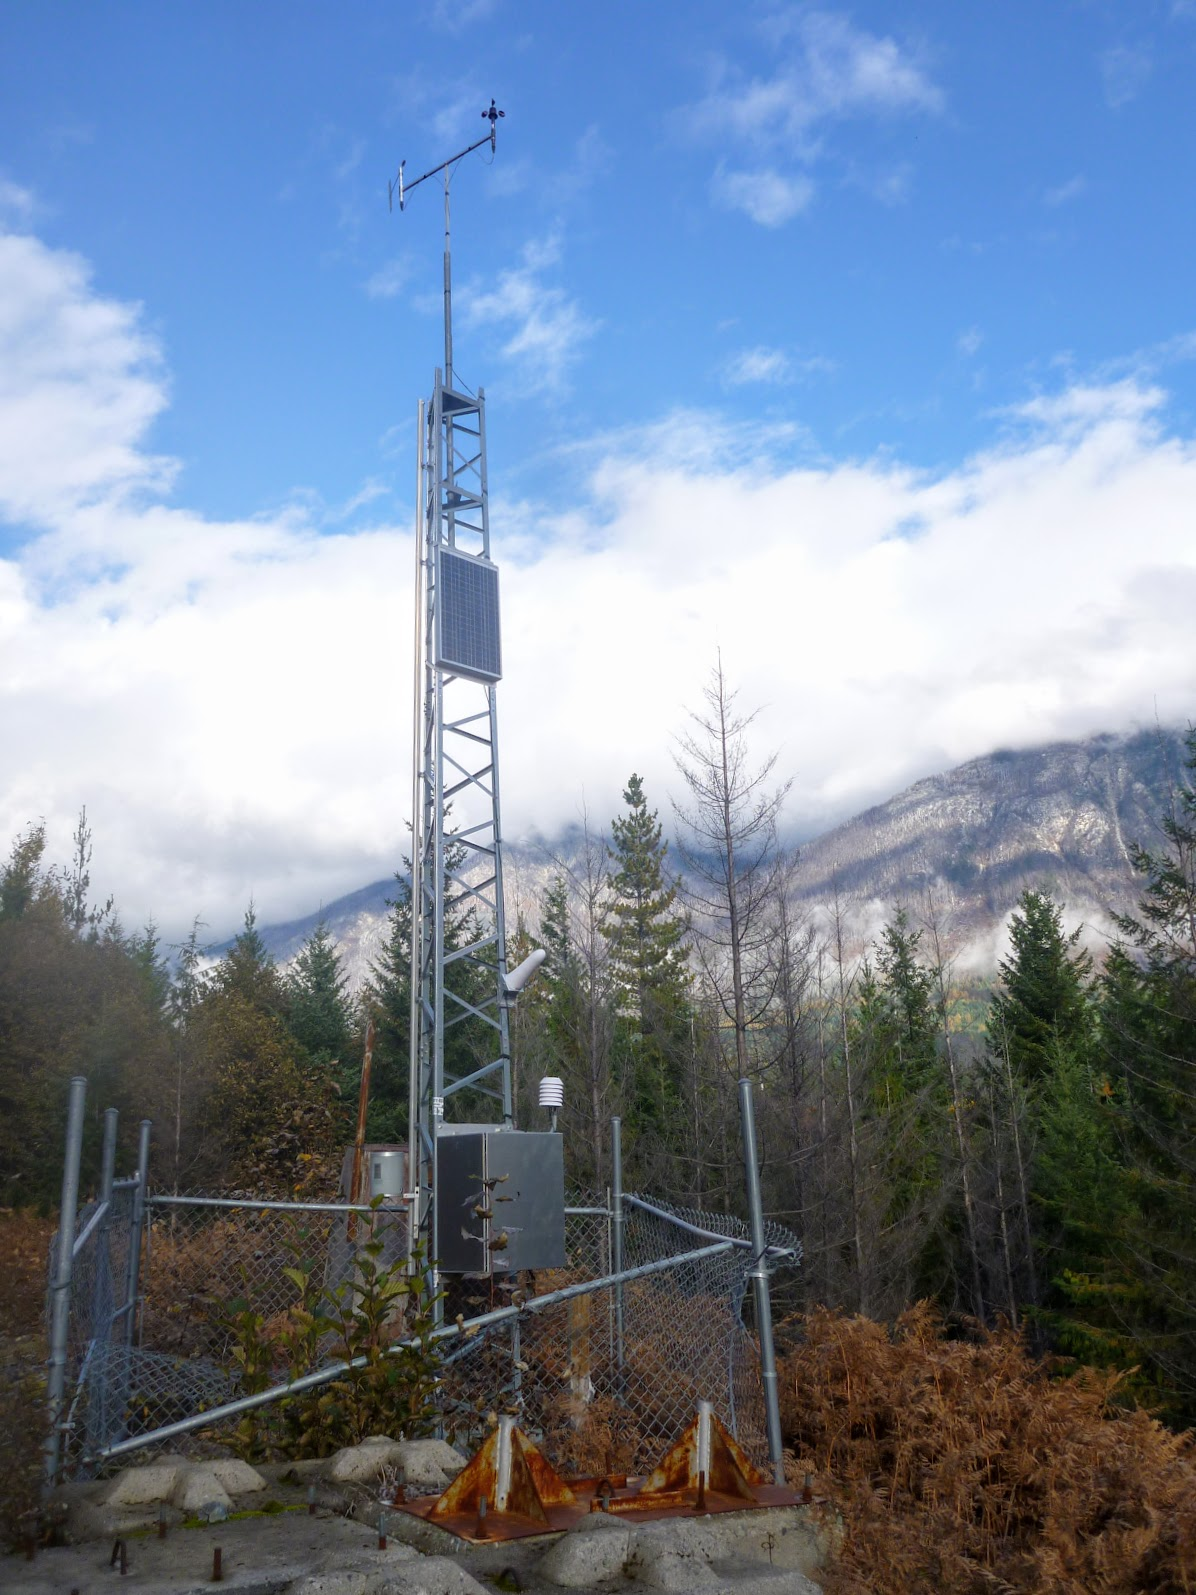 There was a weather station on the logging road.